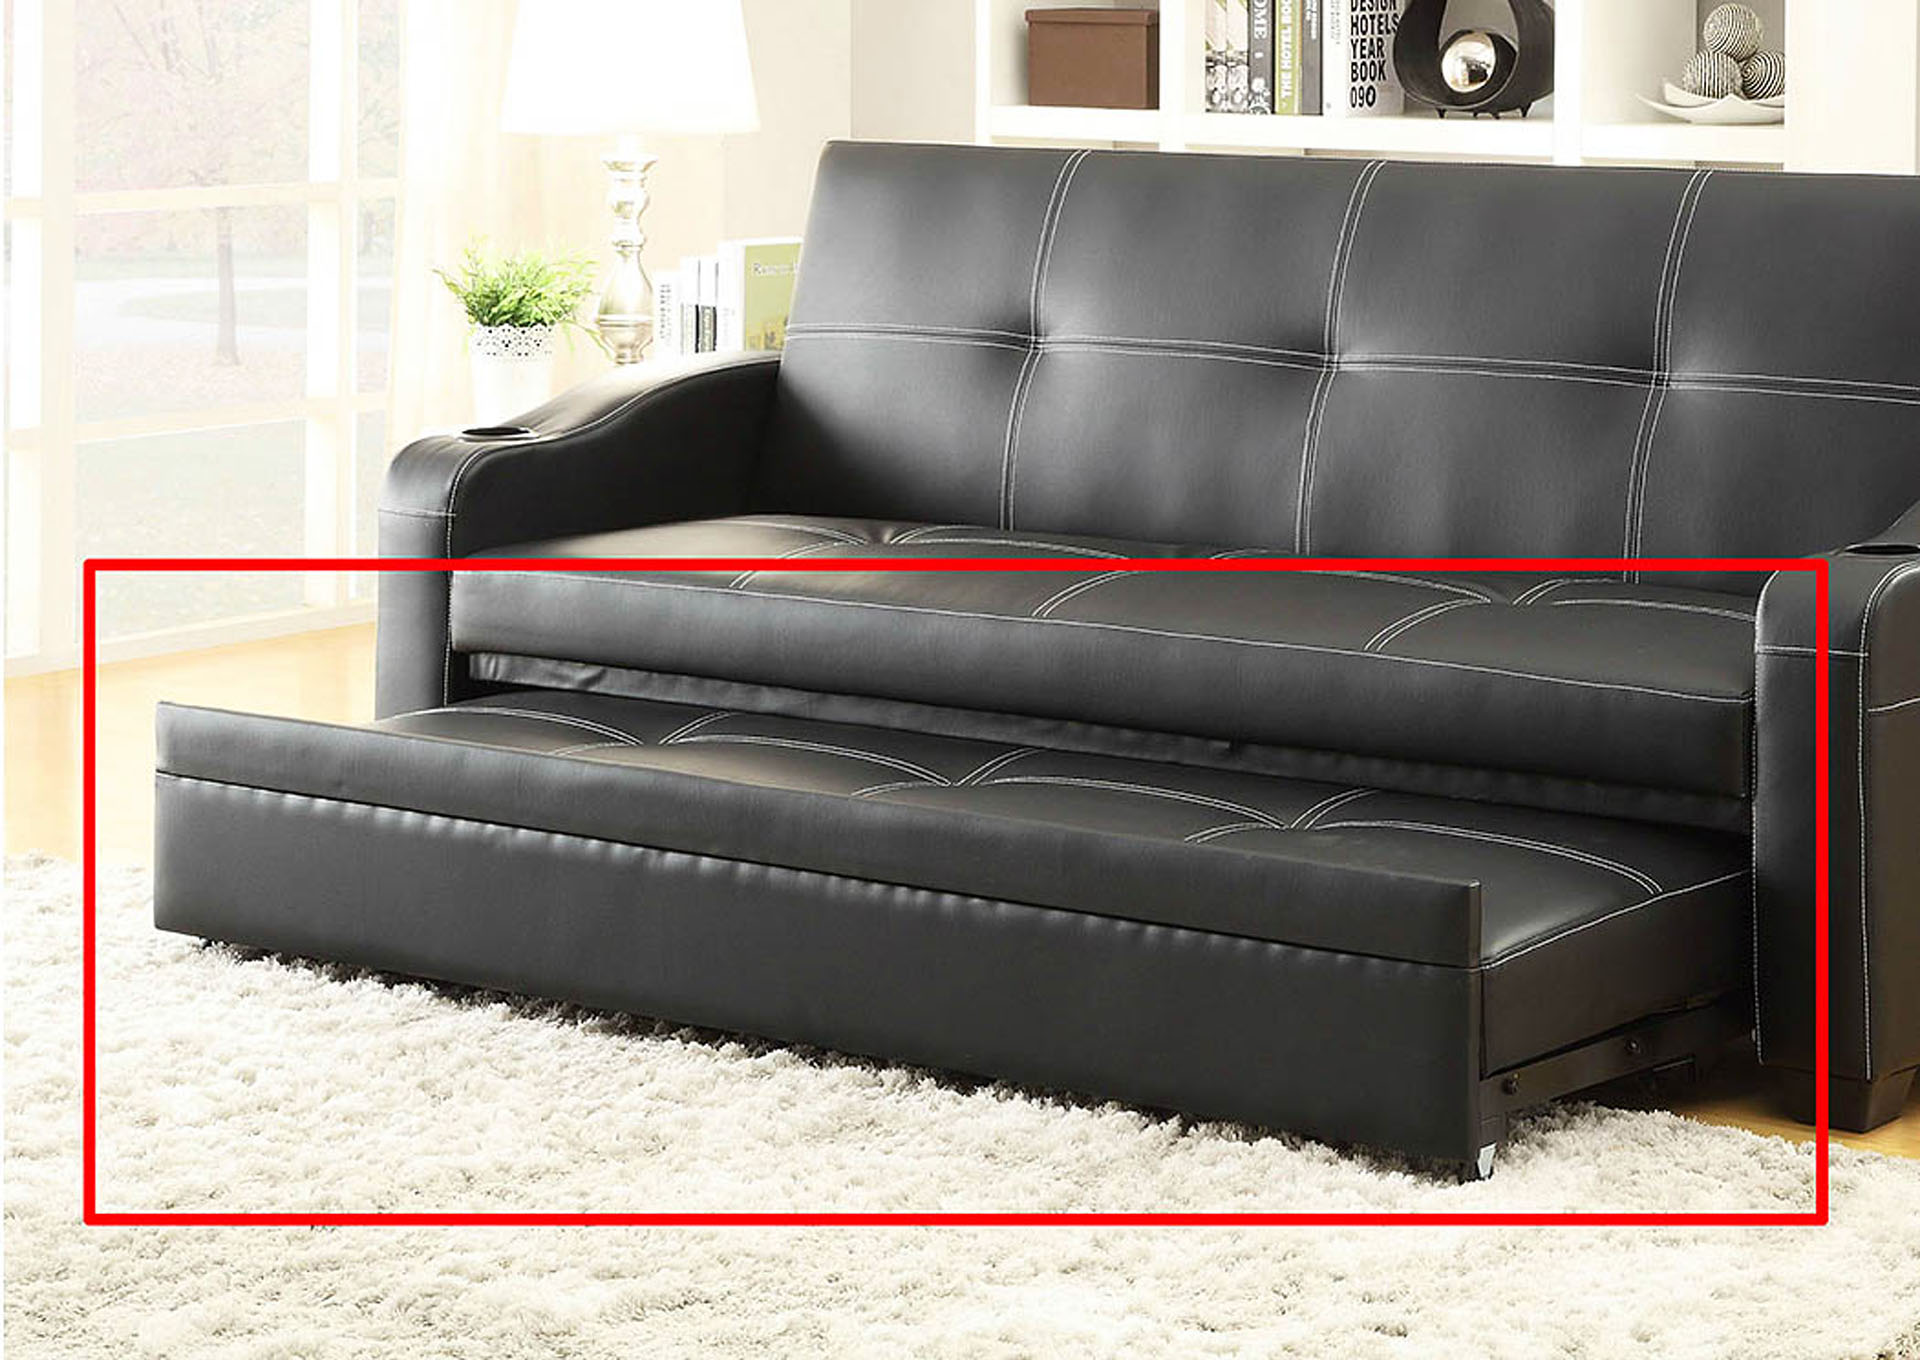 Marcelo Black Lounger Sofa w/Pull-Out Trundle & Arms,Homelegance